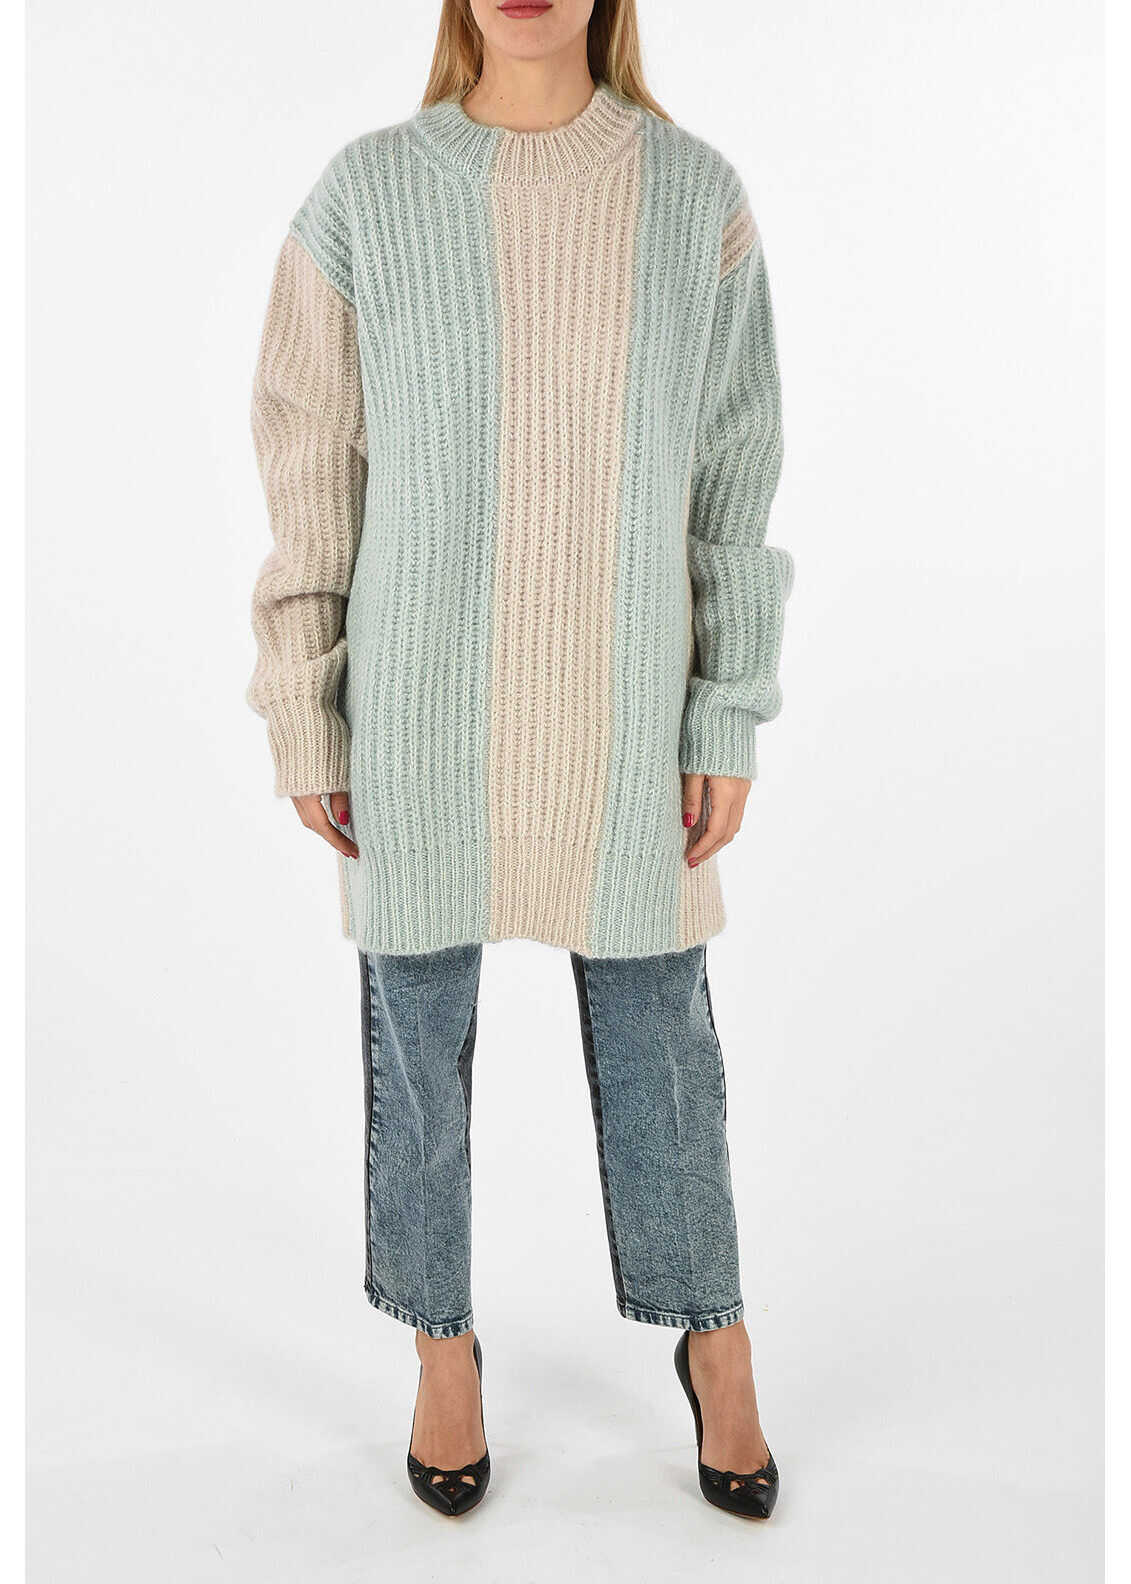 Calvin Klein 205W39NYC awning striped mohair and wool oversized crew-neck MULTICOLOR